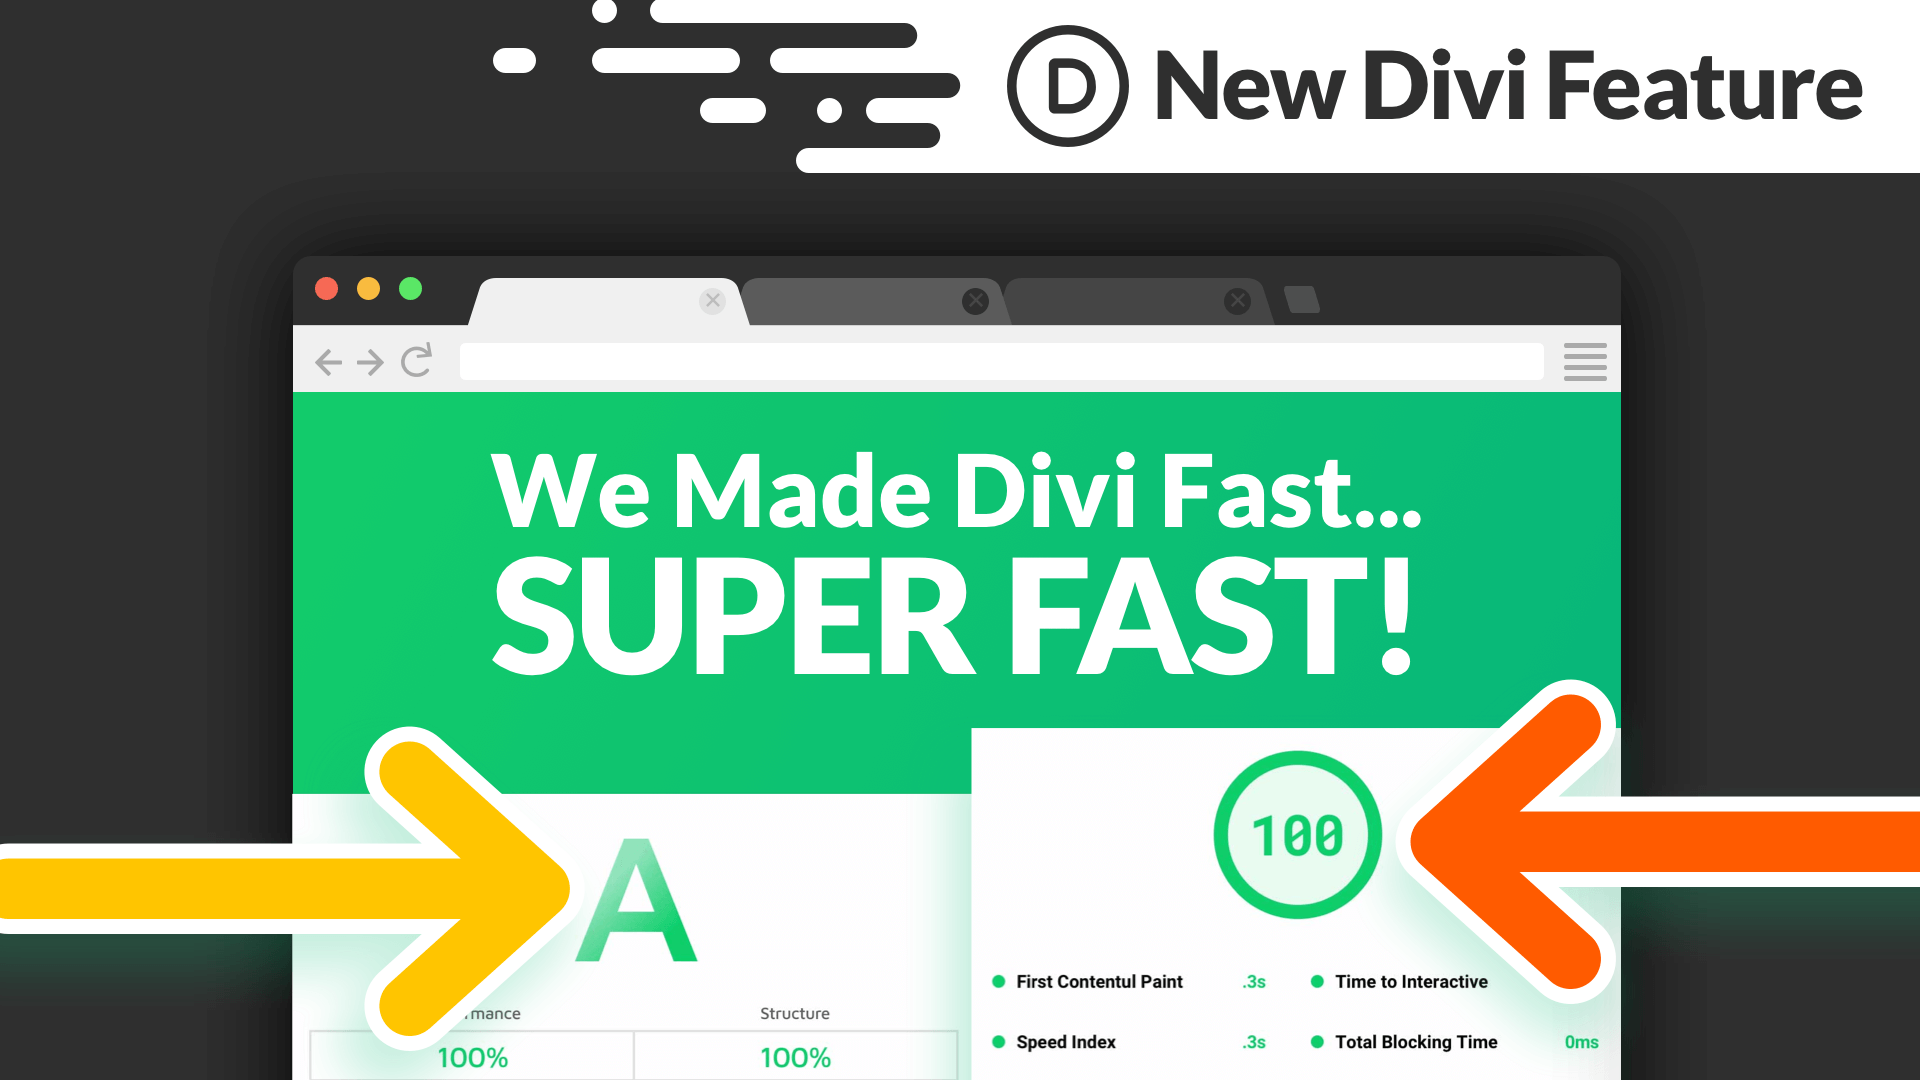 Speeding Up Divi From Every Angle